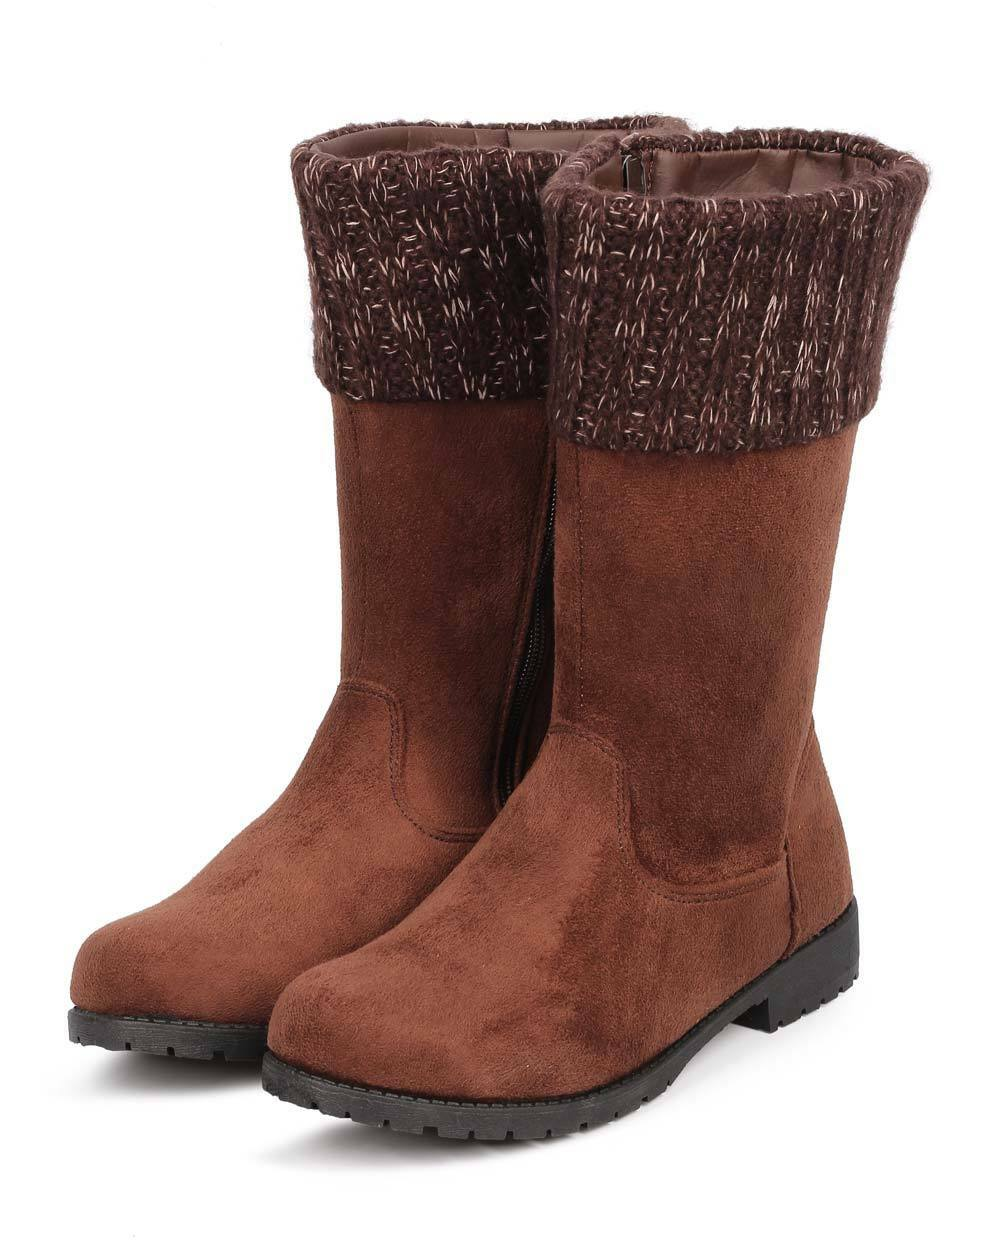 New Women Bumper Evelyn-09 Suede Sweater Cuff Round Toe Tailored Riding Boot Sz